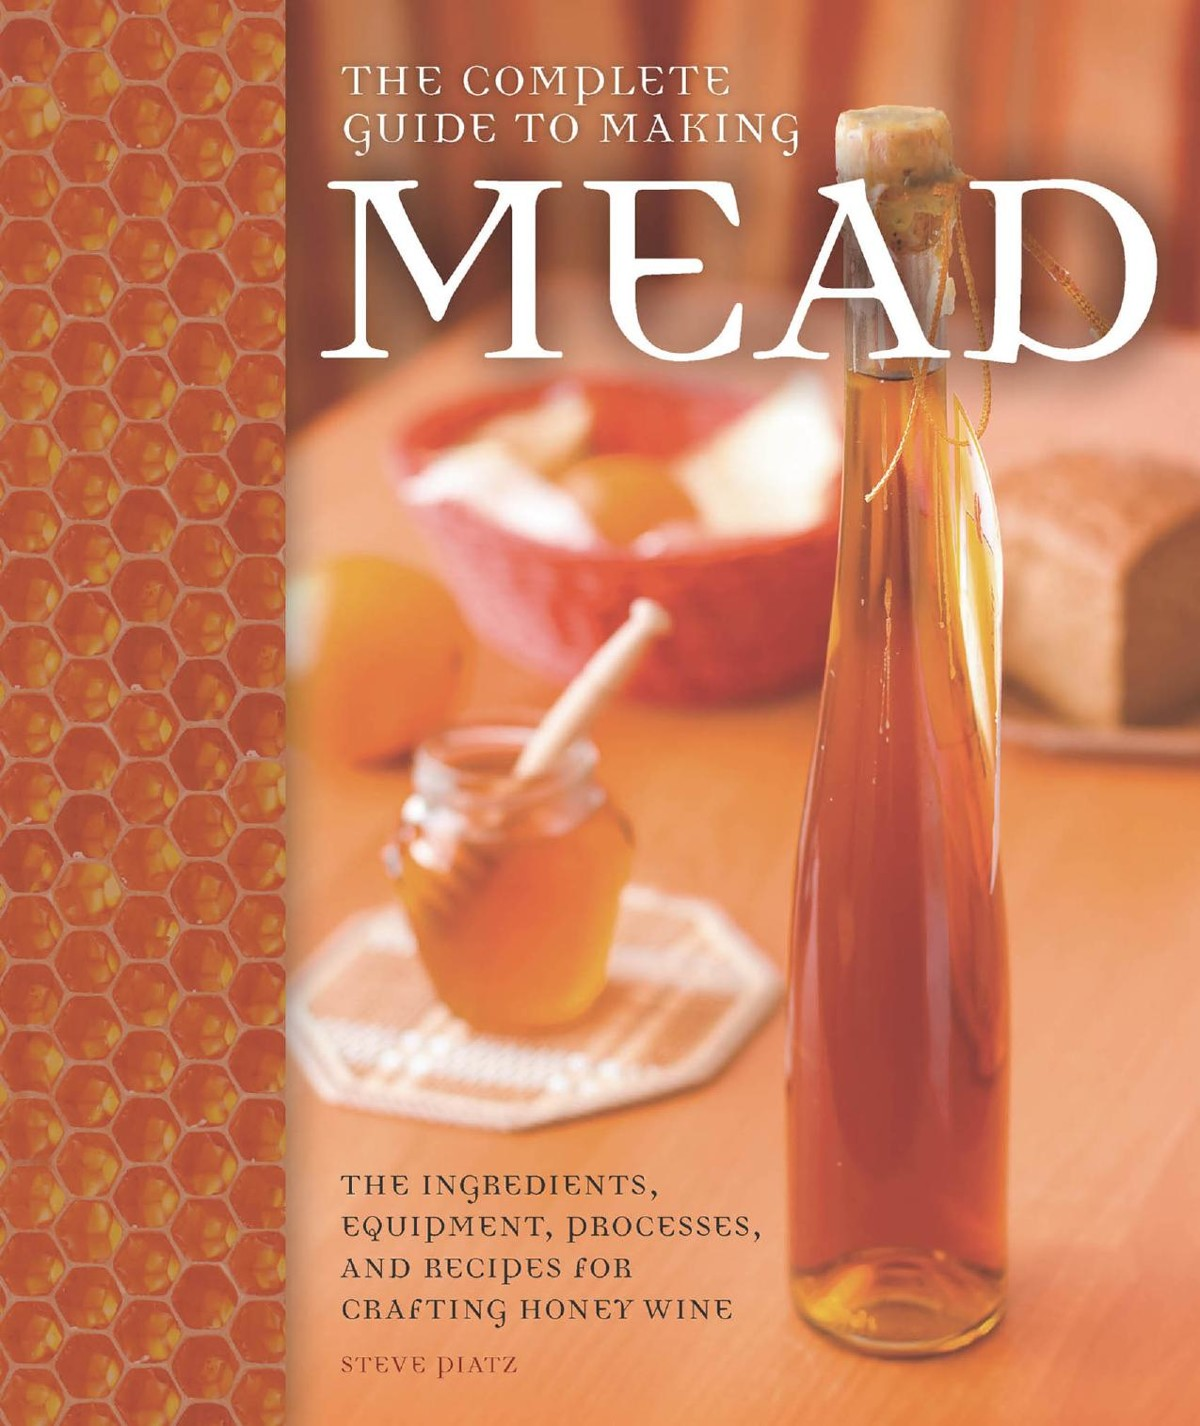 The Complete Guide to Making Mead free download